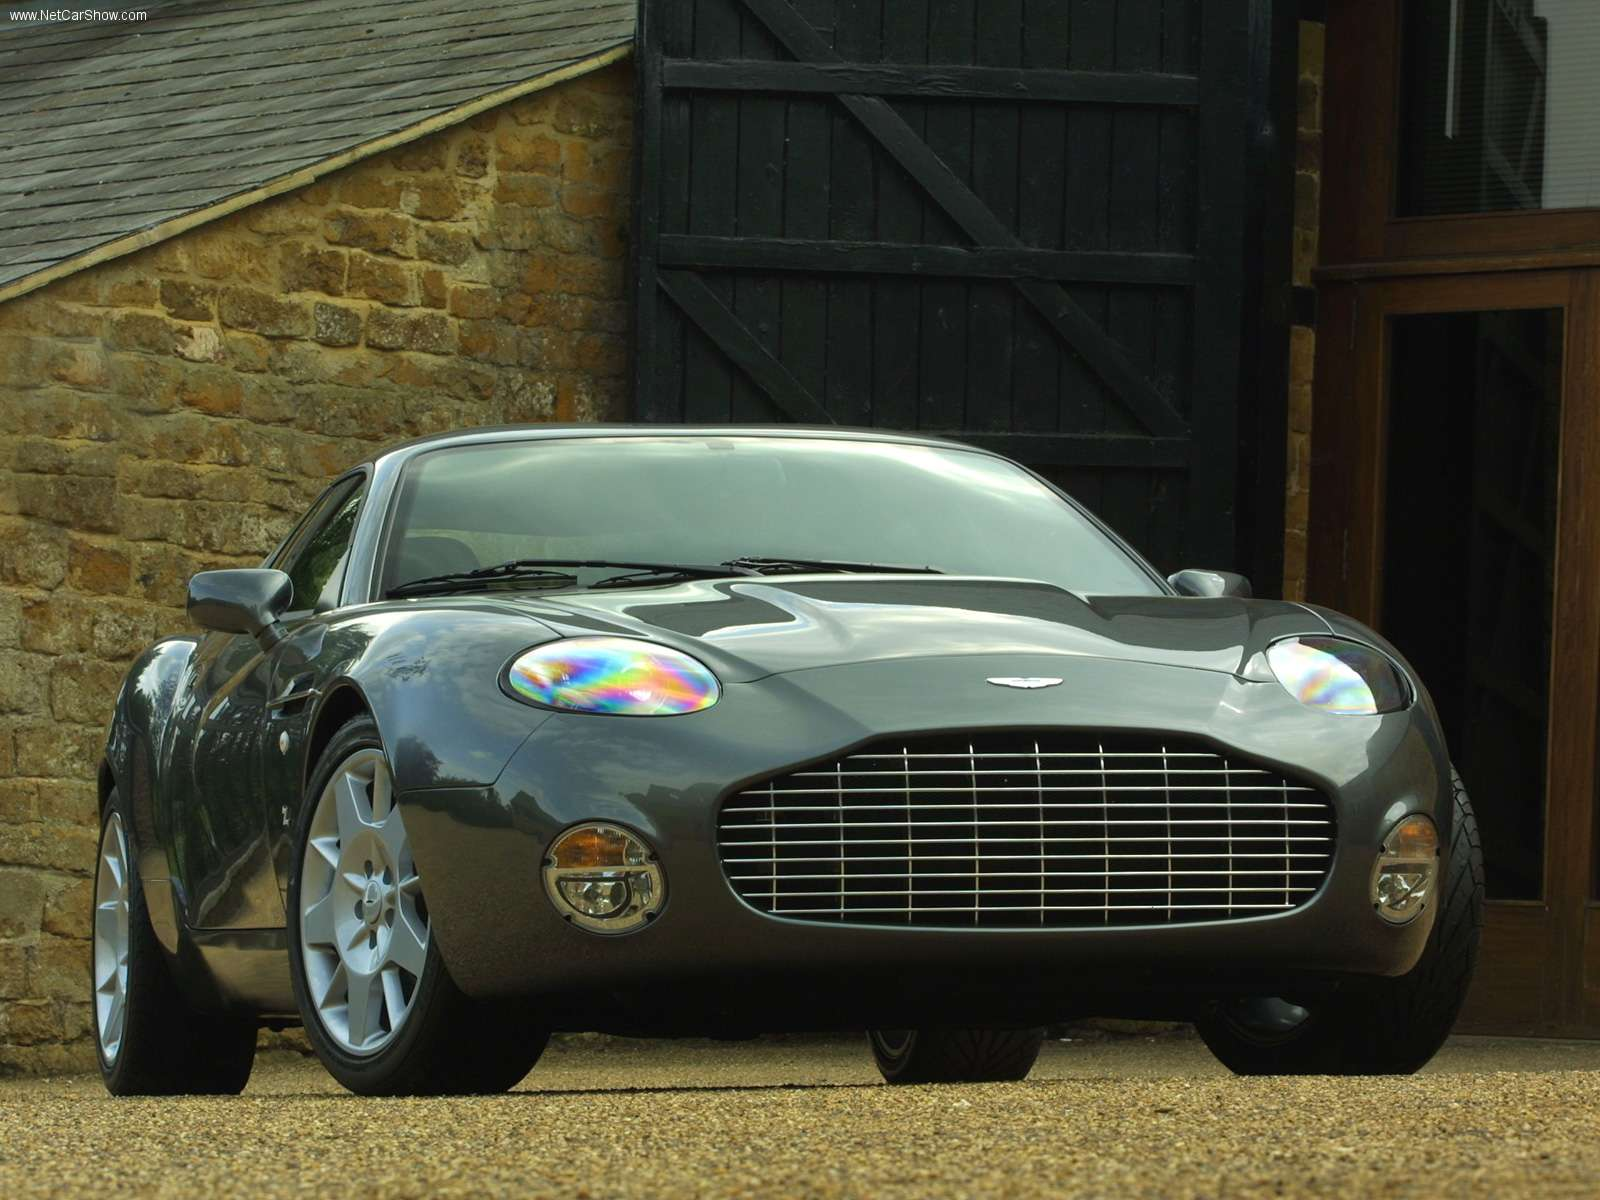 Tuning Aston Martin DB7 Coupe 2002 Online, Accessories And